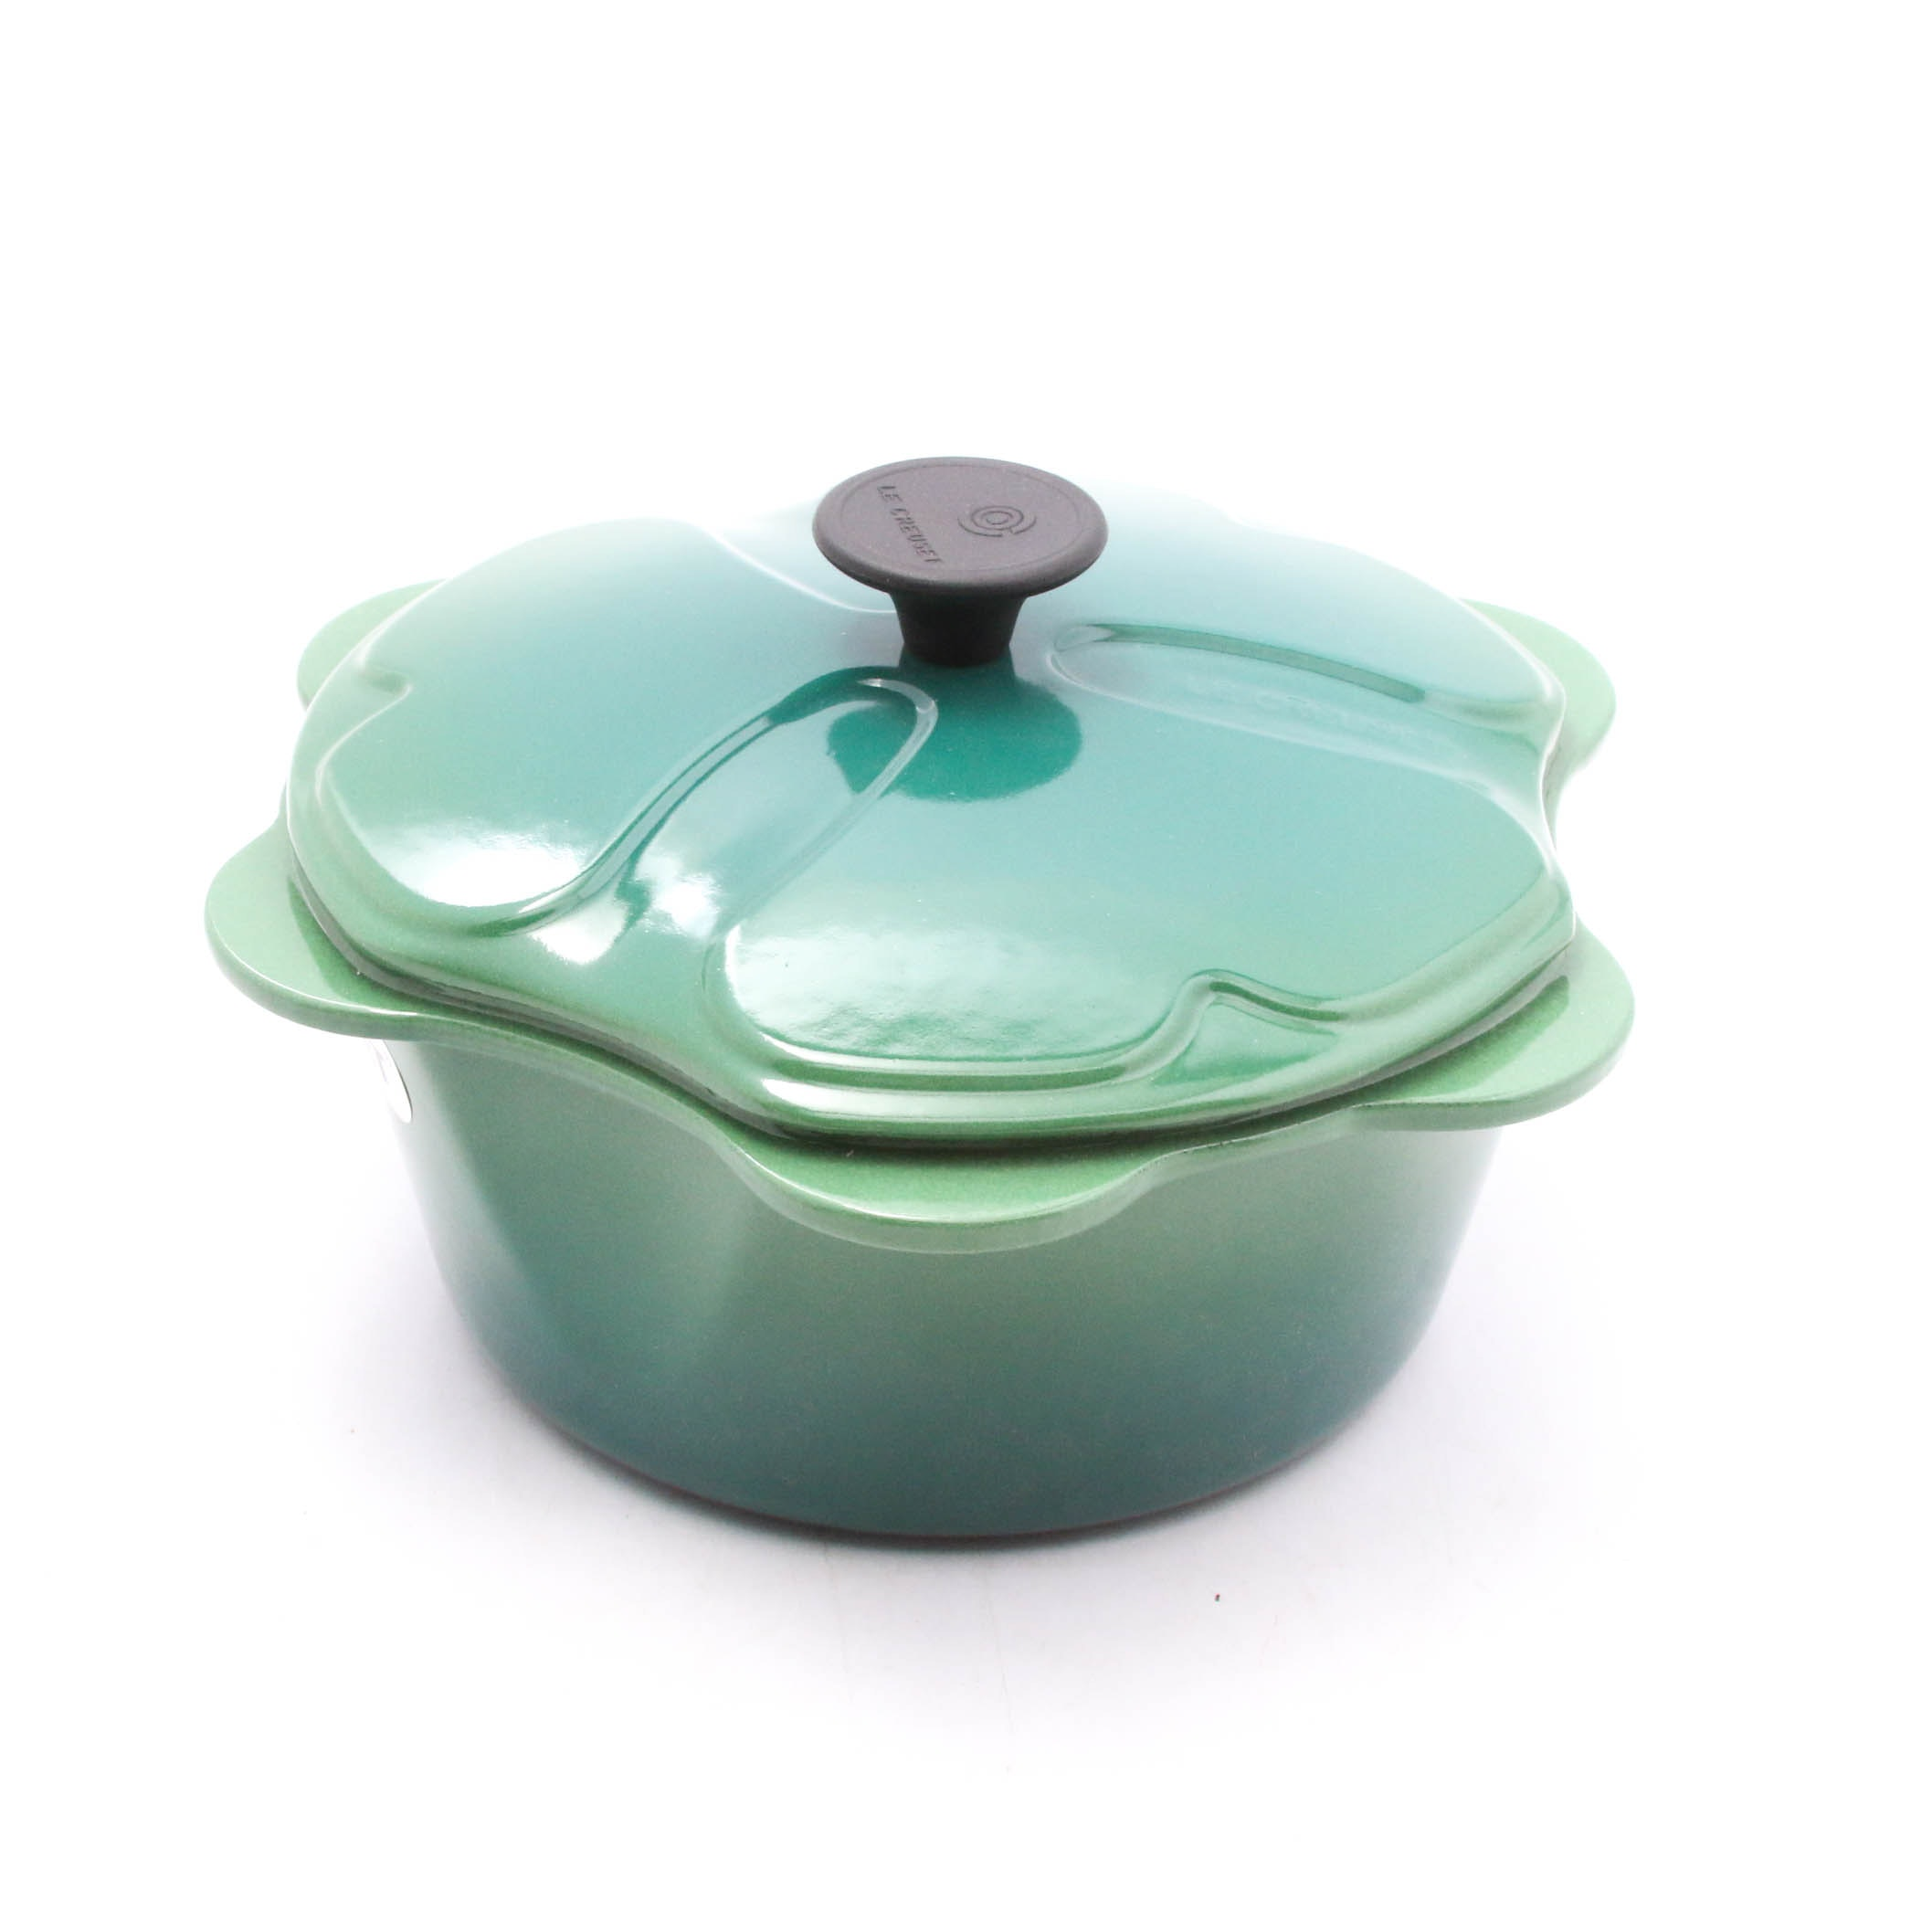 Le Creuset Enameled Cast Iron Shamrock Dutch Oven, Made in France